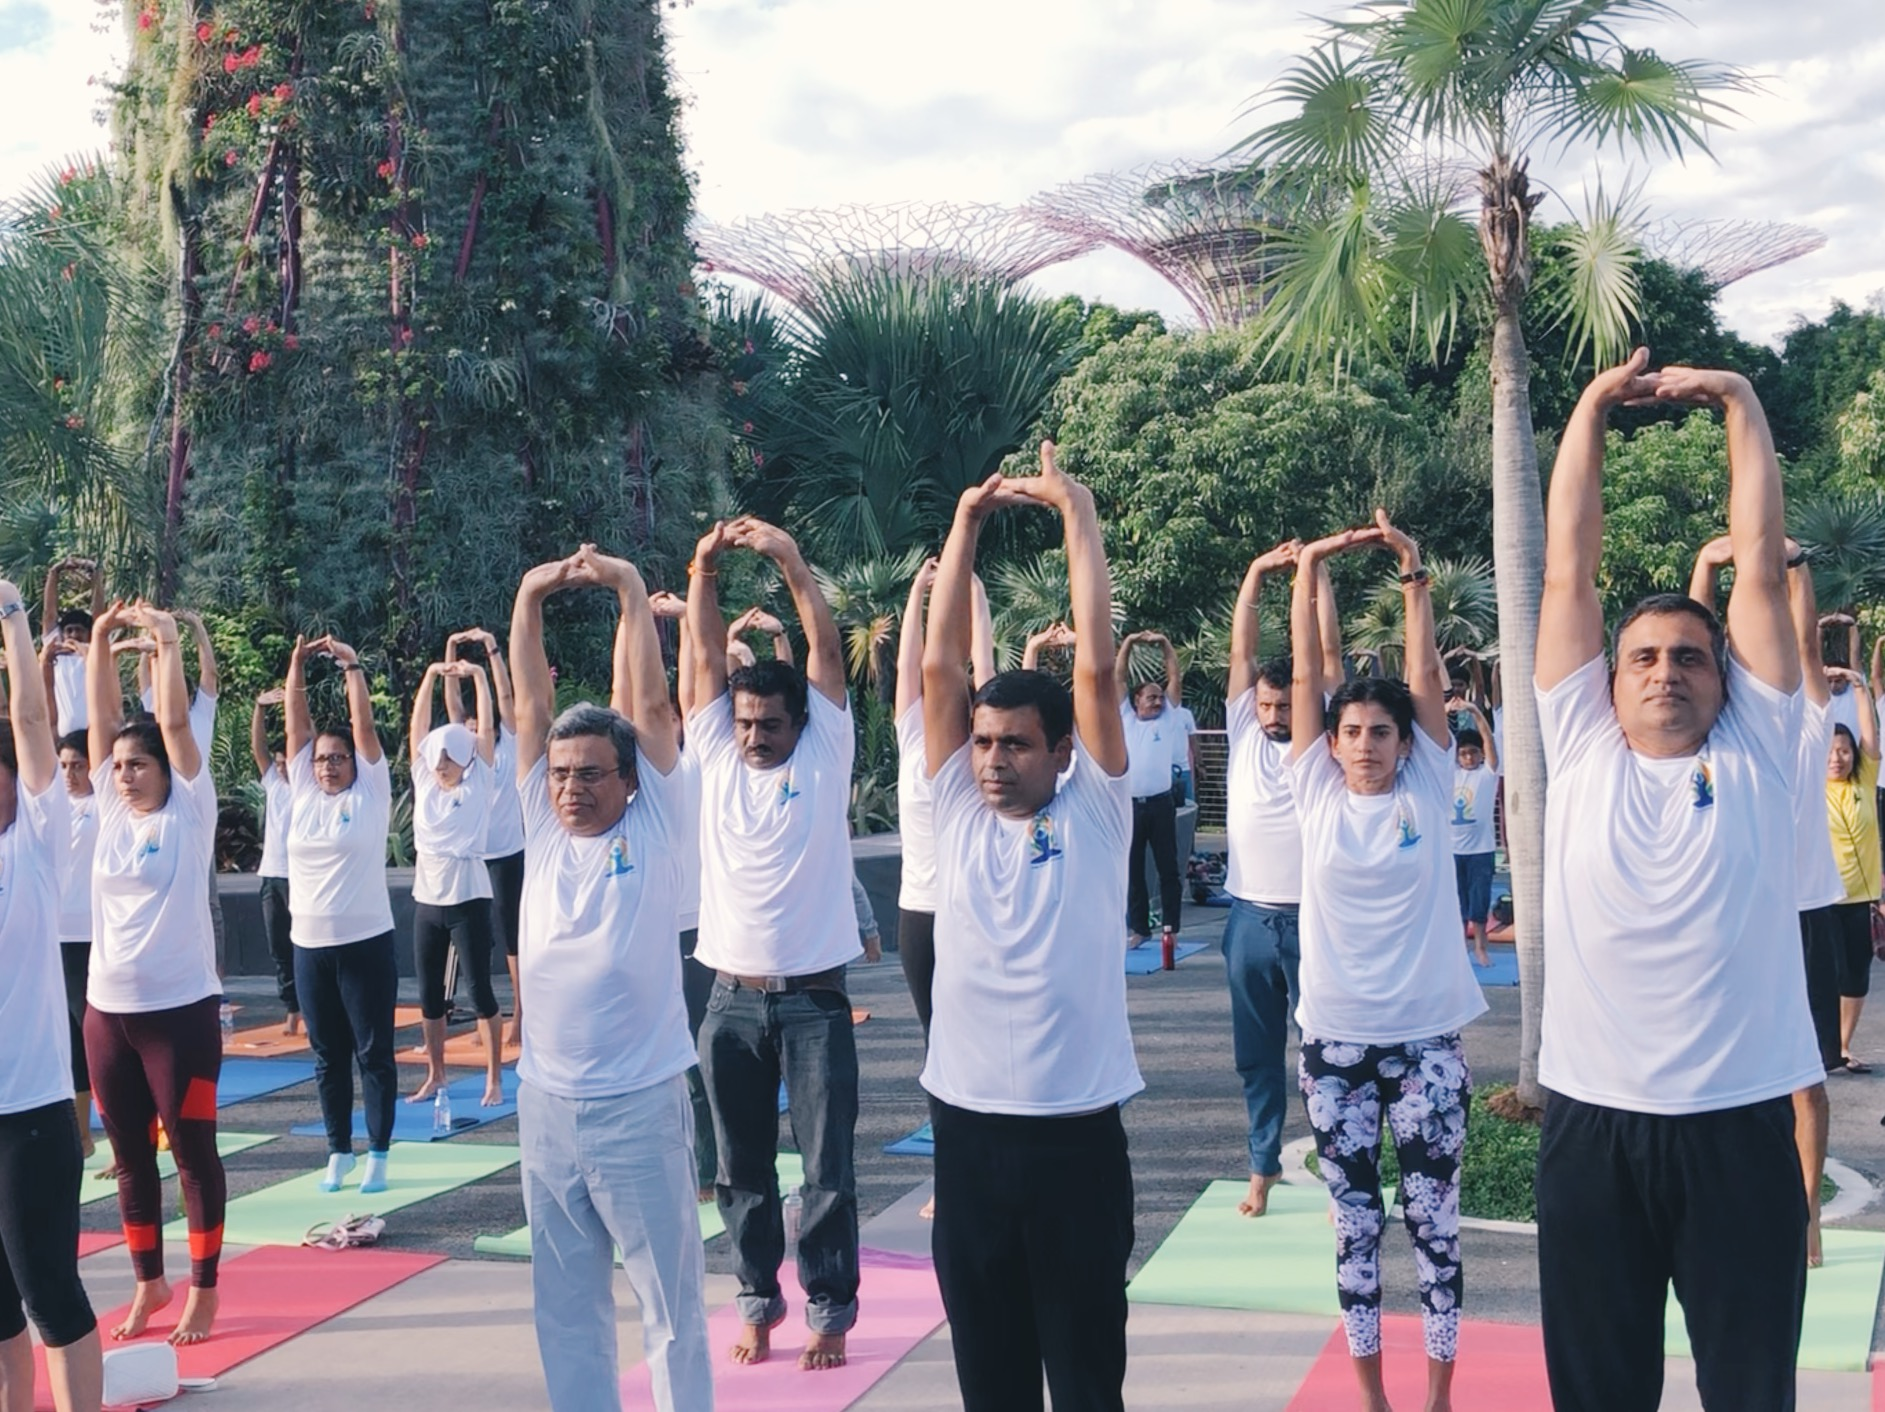 Mr Jawed Ashraf joined the participants in a yoga demonstration session. Photo: Connected to India